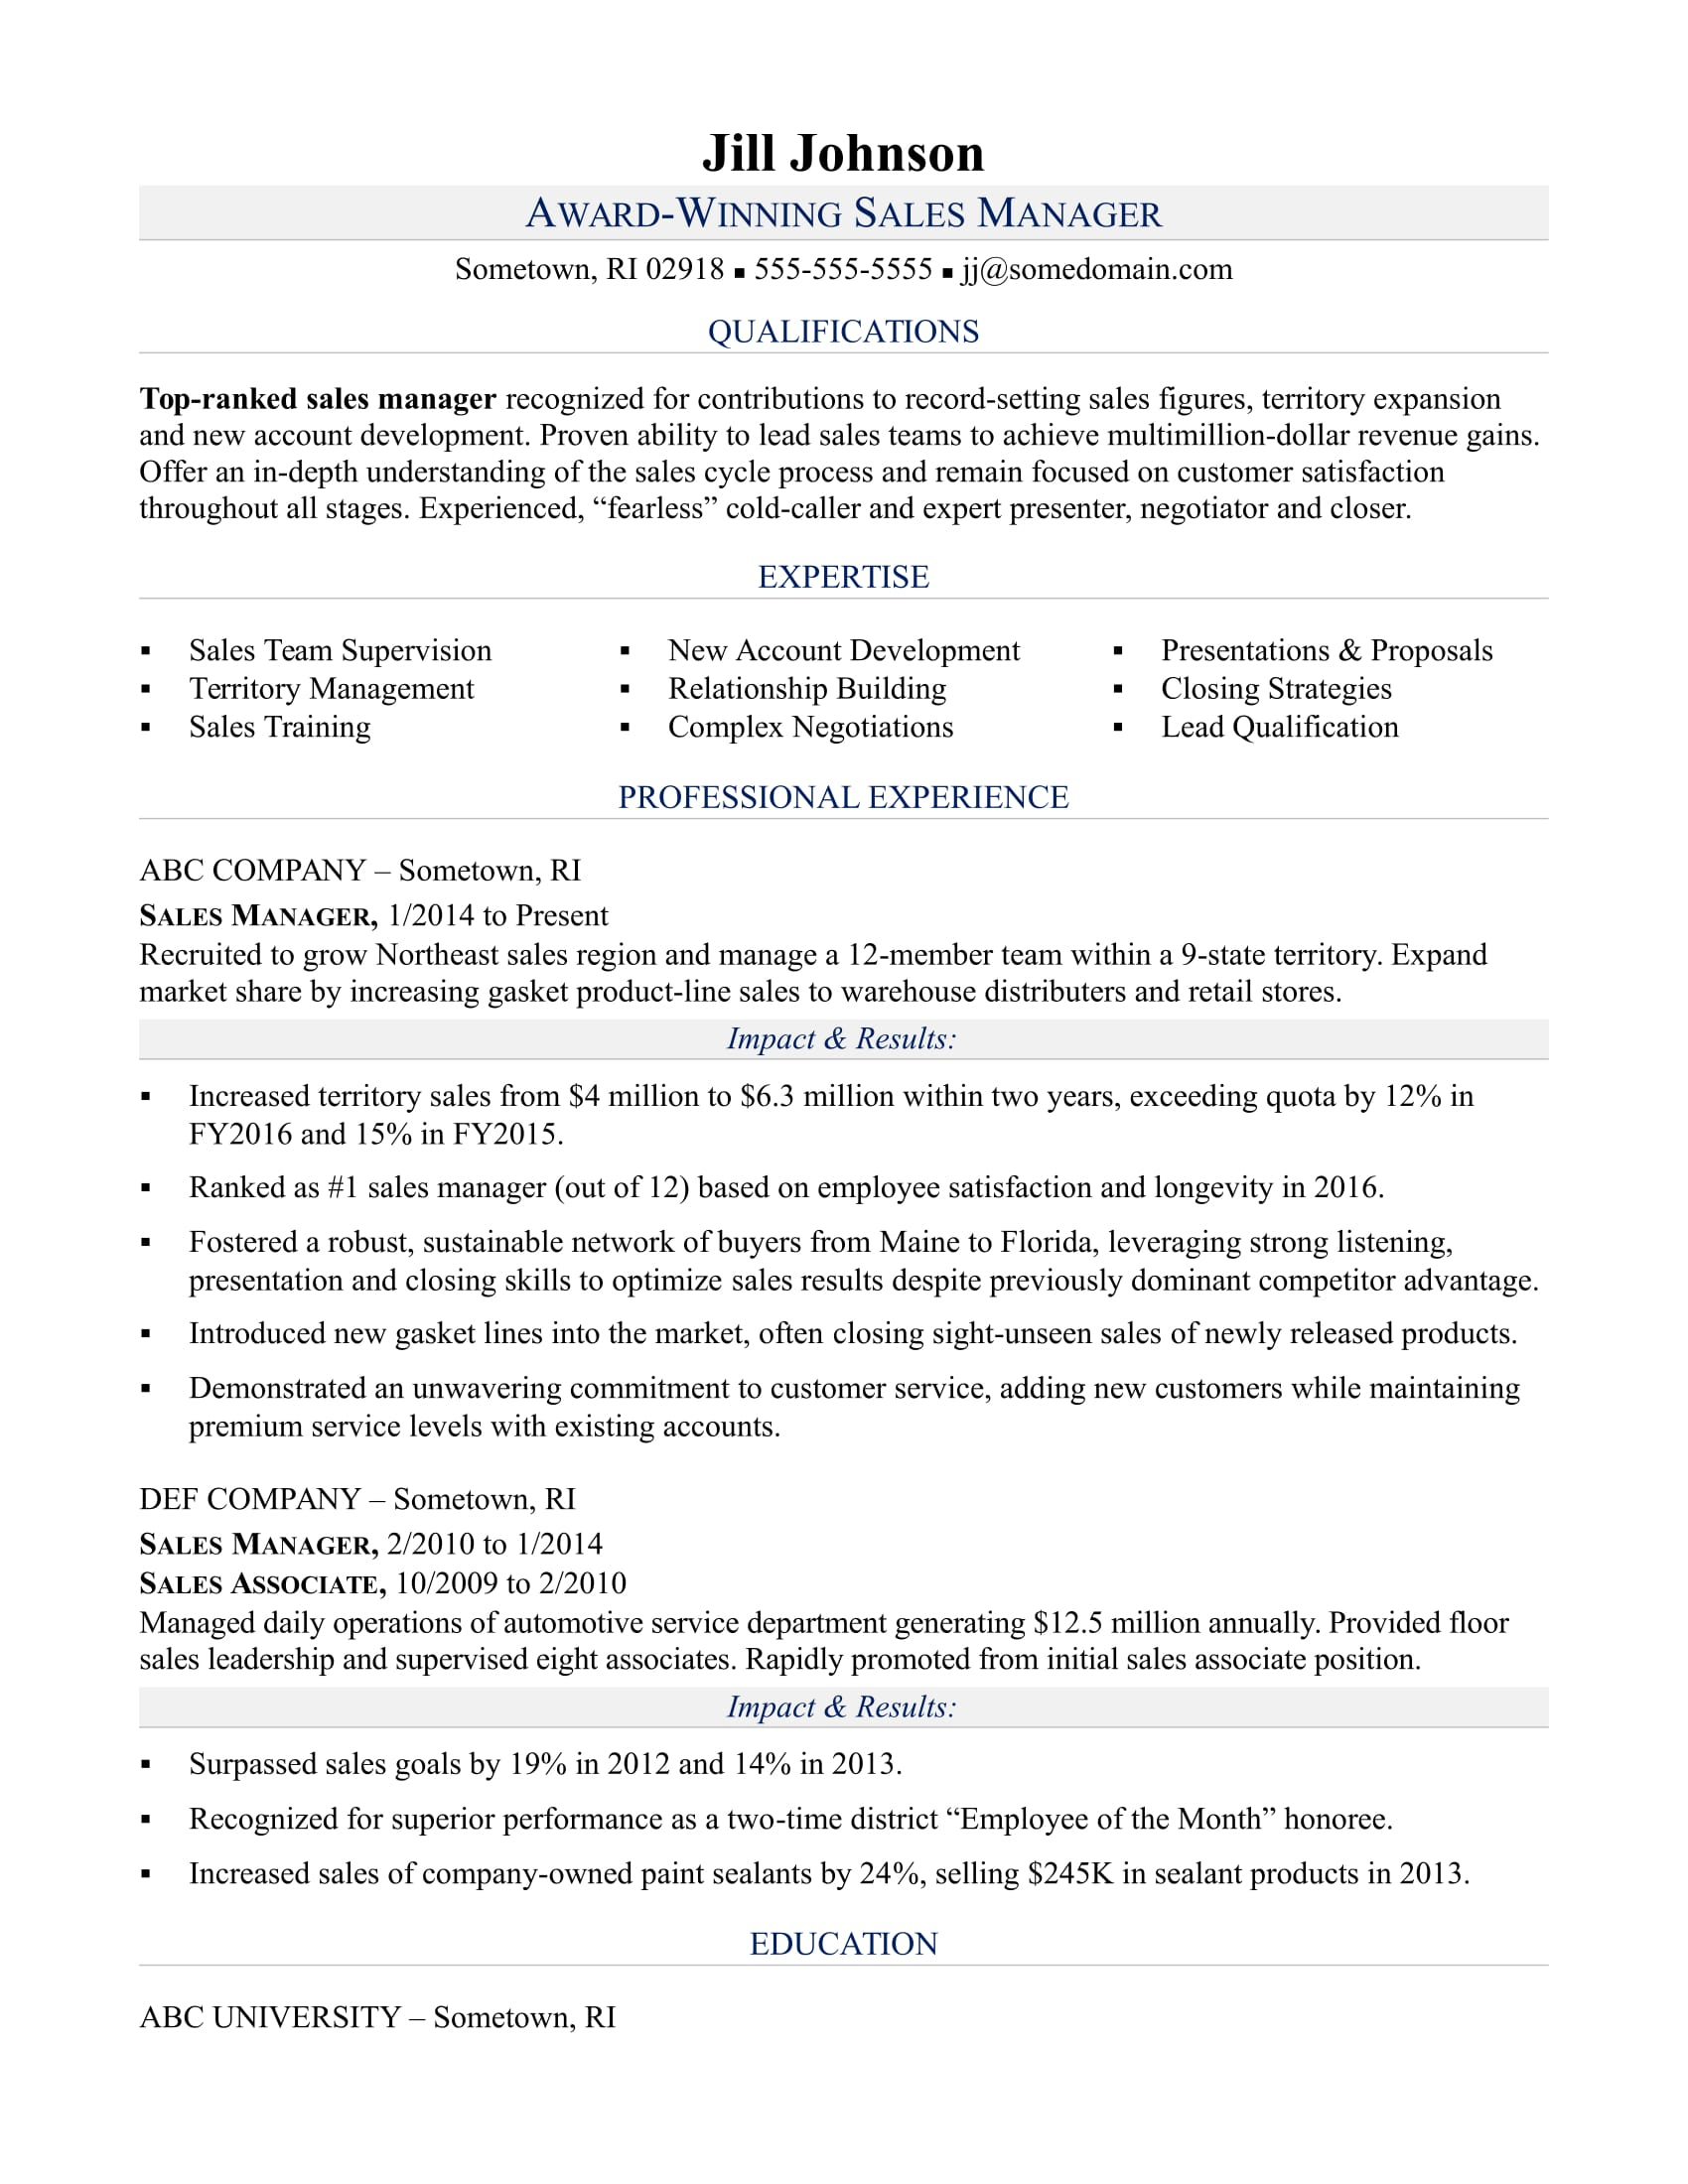 Sales manager resume sample for Sample resume for managing director position